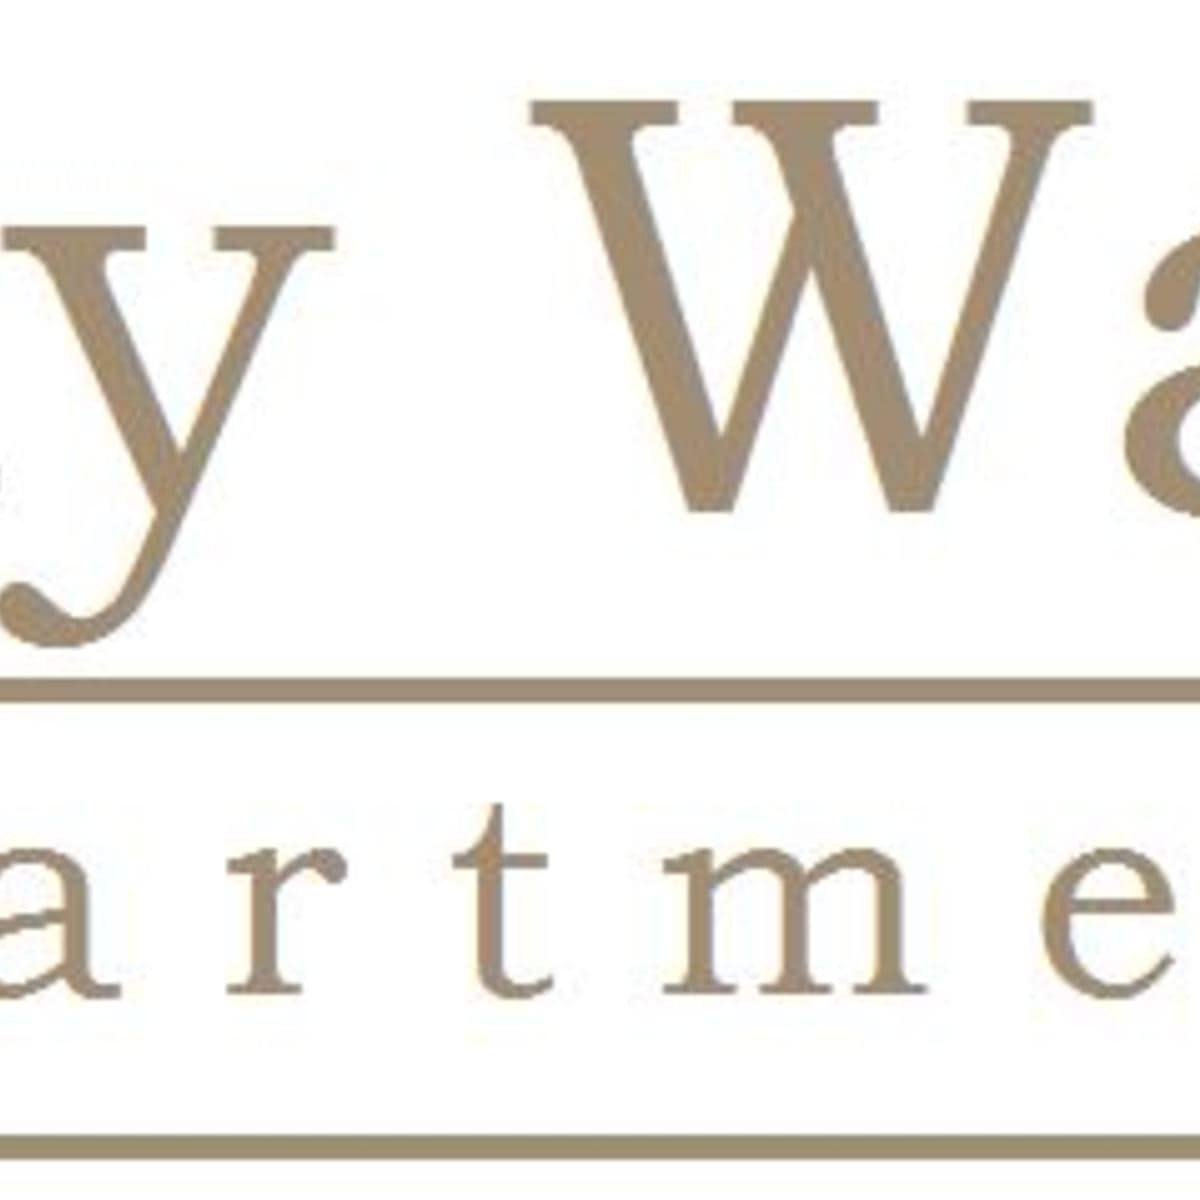 Citywalk Apartments: City Walk Apartments In Concord, CA